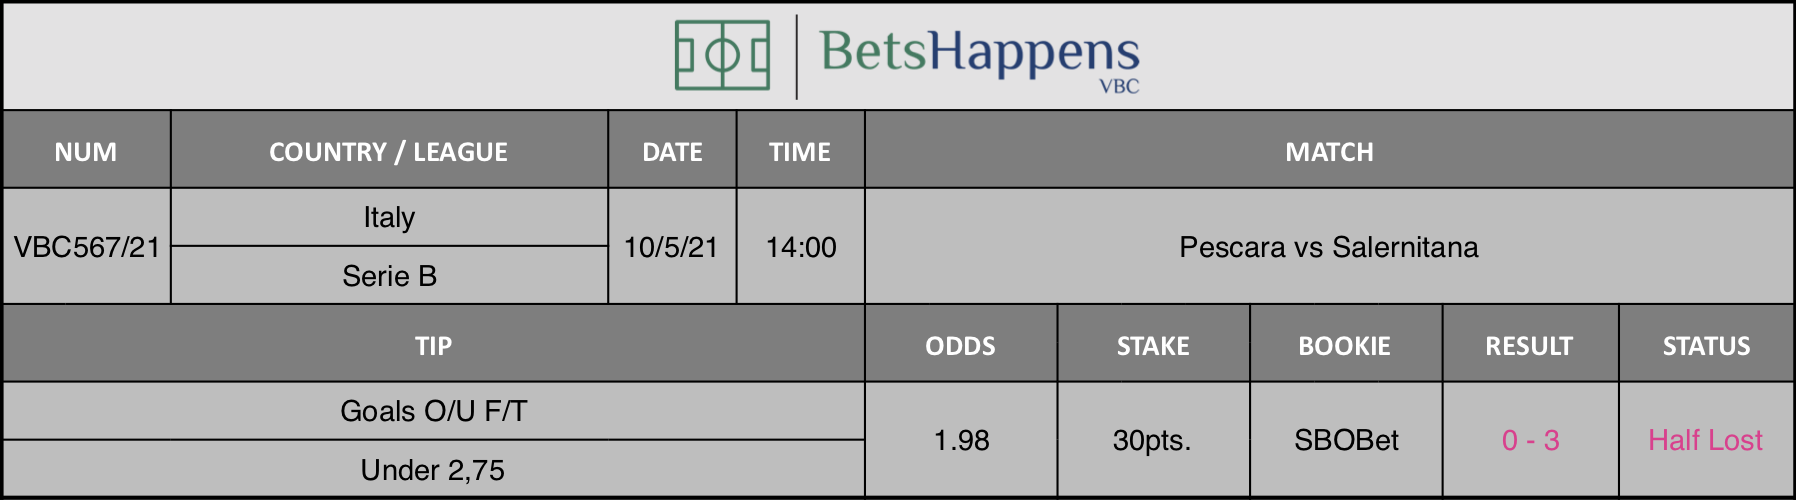 Results of our tip for the Pescara vs Salernitana match where Goals O/U F/T Under 2,75 is recommended